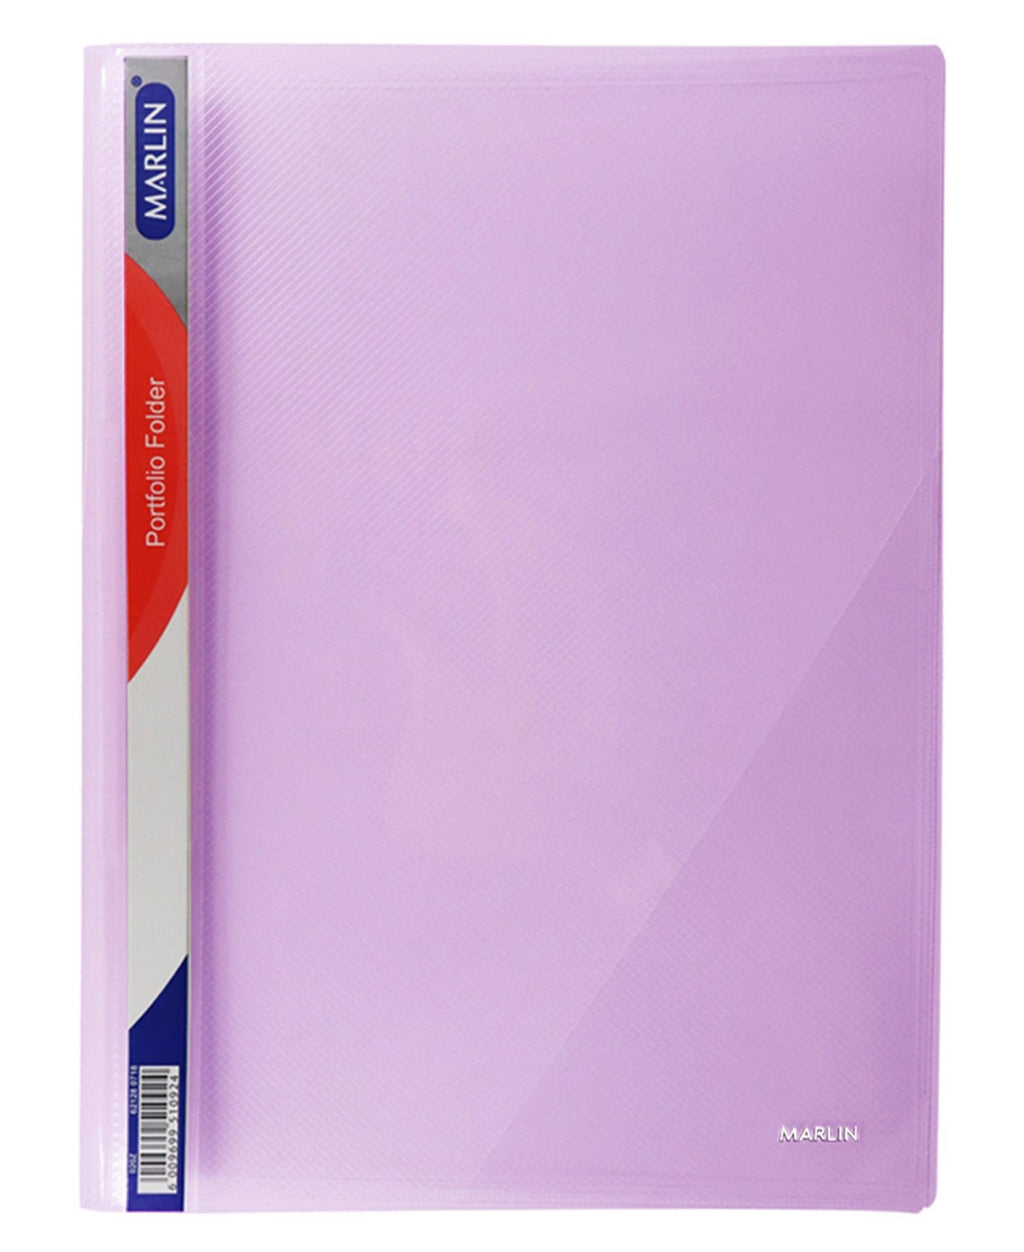 Marlin Portfolio Folder - Purple